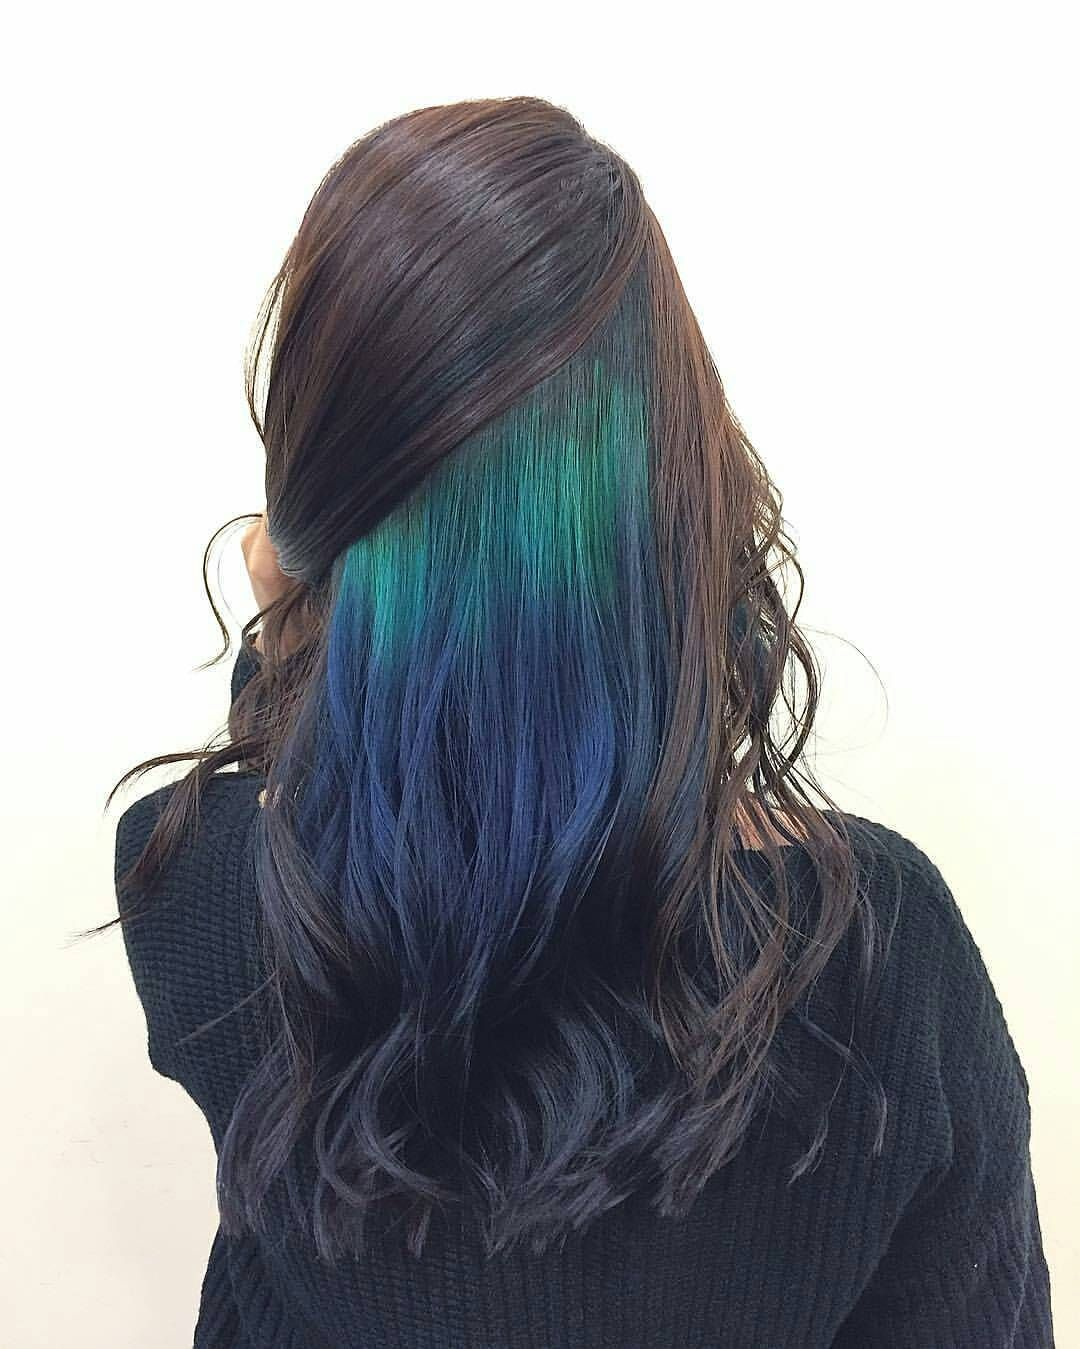 Under a bright and sunny day, this inner hair color design can ...